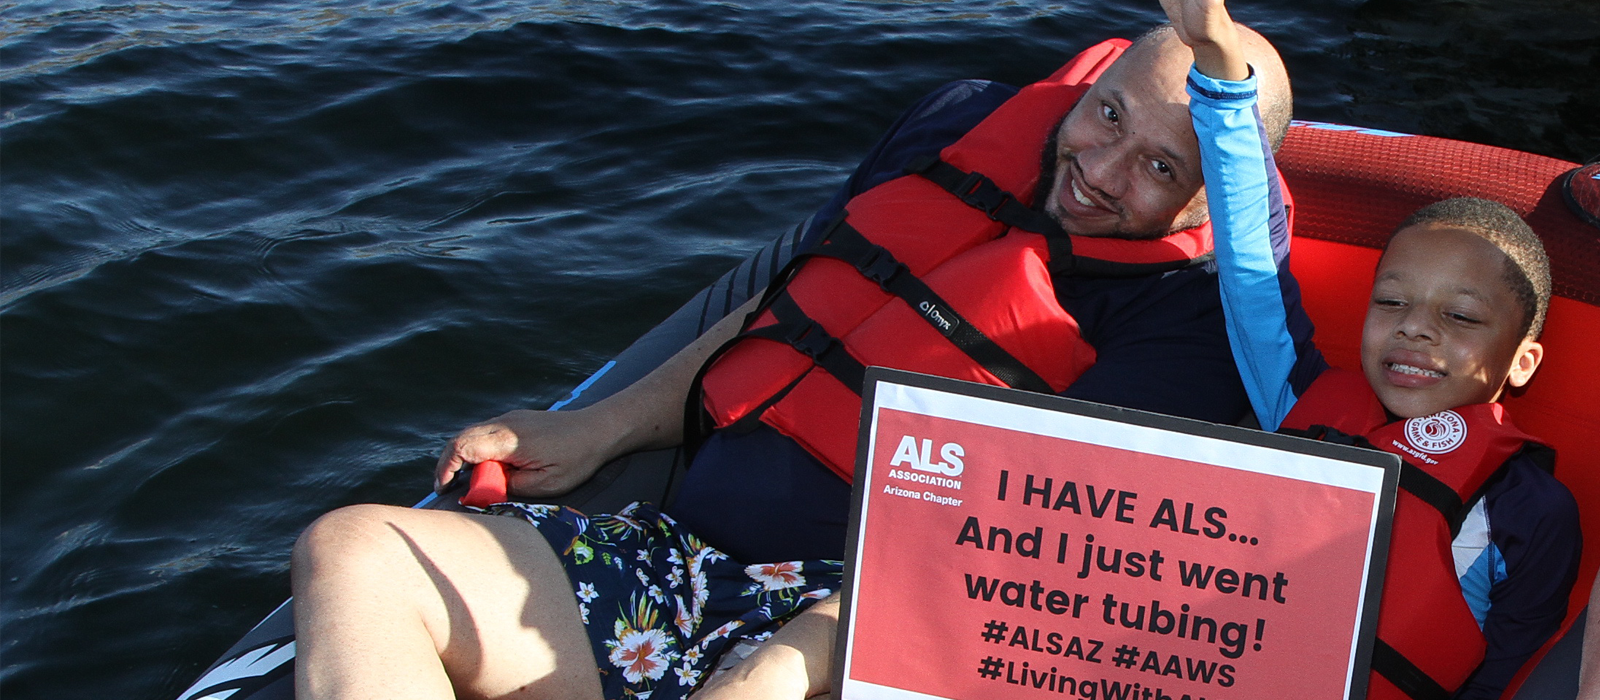 The Als Association Arizona Chapter